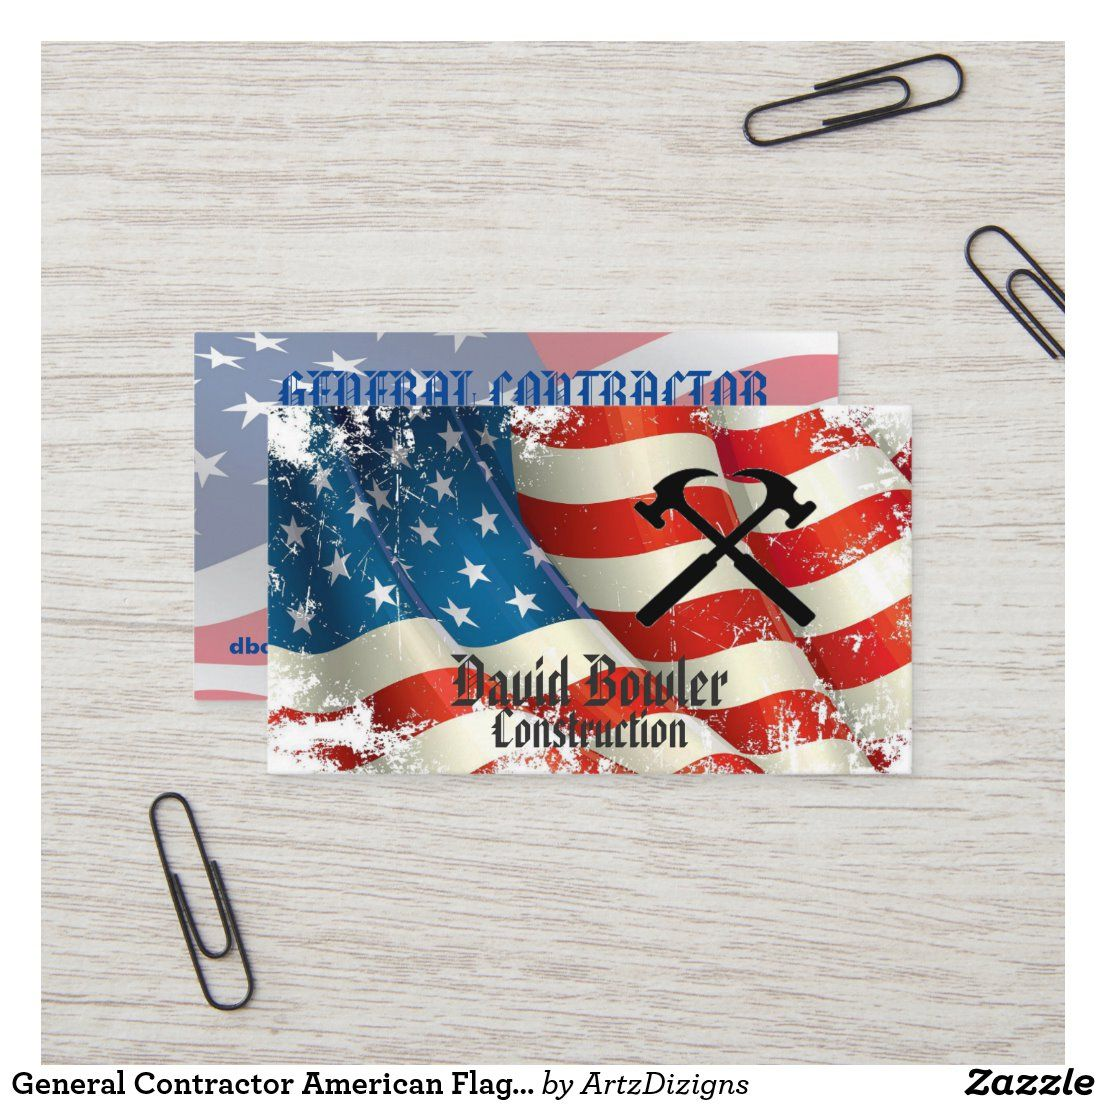 General Contractor American Flag Hammers Business Card Zazzle Com In 2020 Business Pens Unique Business Cards Zazzle Business Cards